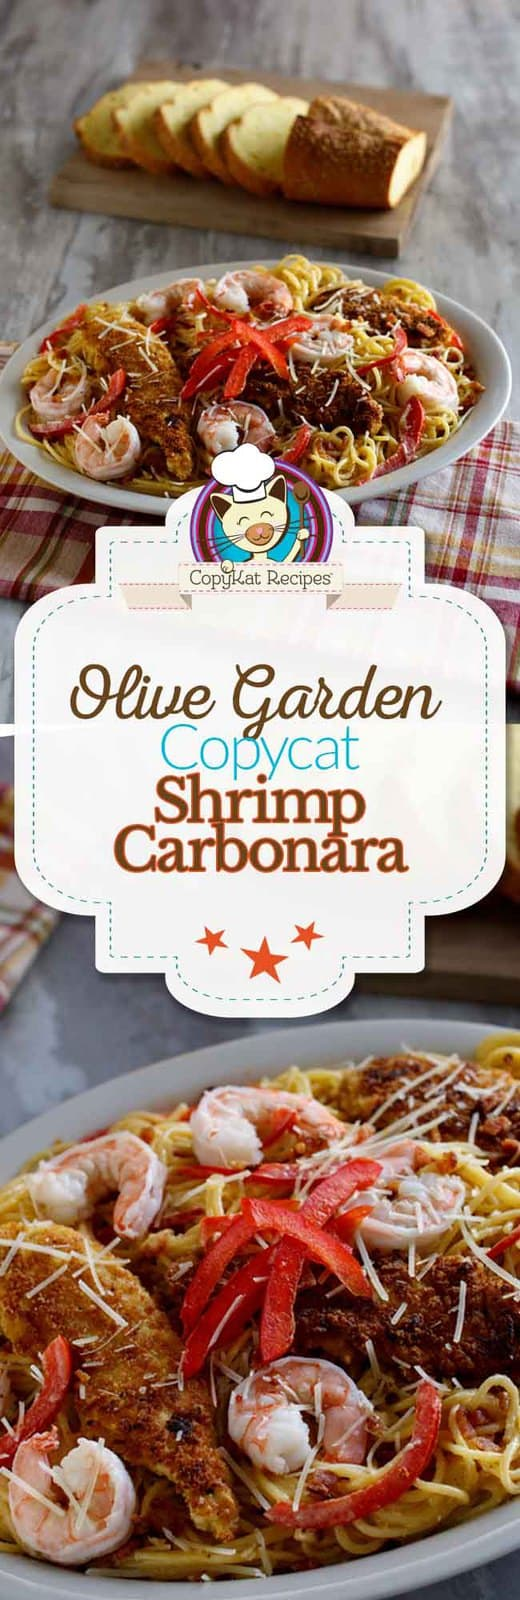 You can recreate this famous Olive Garden Shrimp Carbonara at home with this easy copycat recipe.